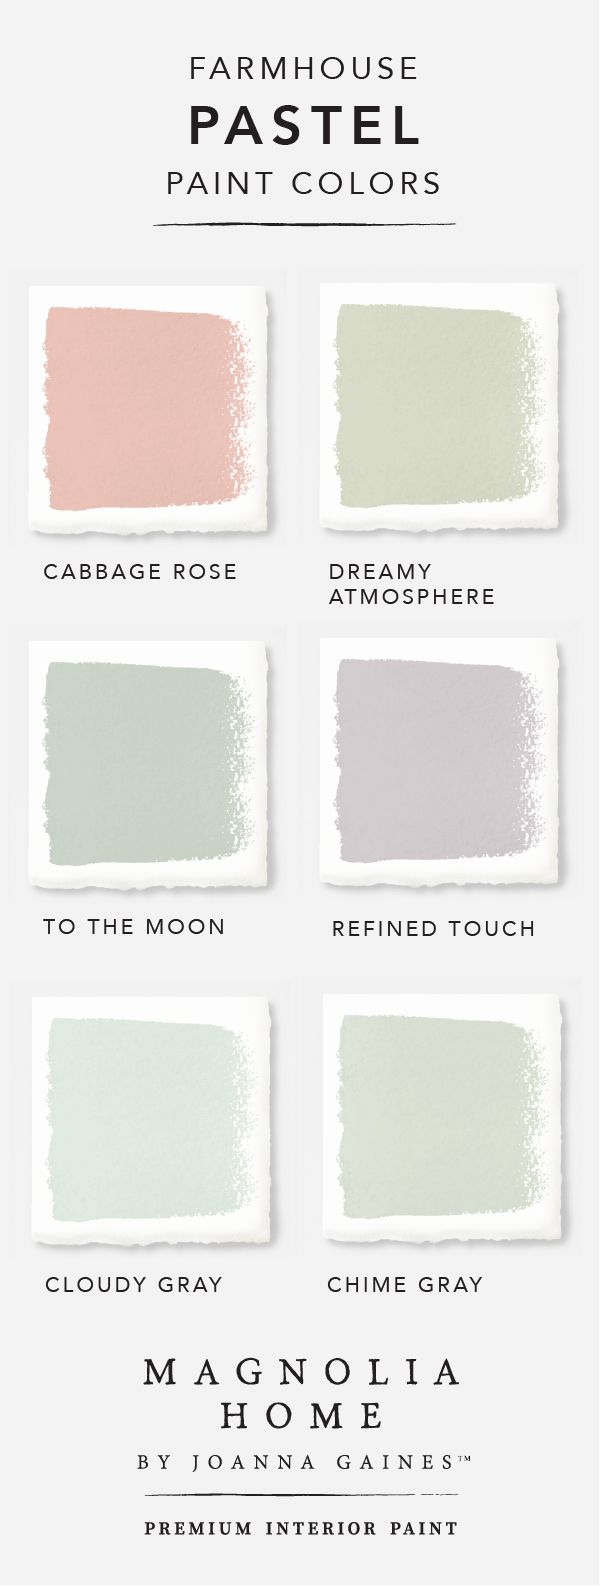 Bring a subtle pop of color into your home with this pastel color palette from the Magnolia Home by Joanna GainesTM paint collection. Cool blues like Dark Moon mix with soothing greens like Stoneware Pieces. Explore the rest of the collection to find more timeless colors and tons of DIY design inspiration.